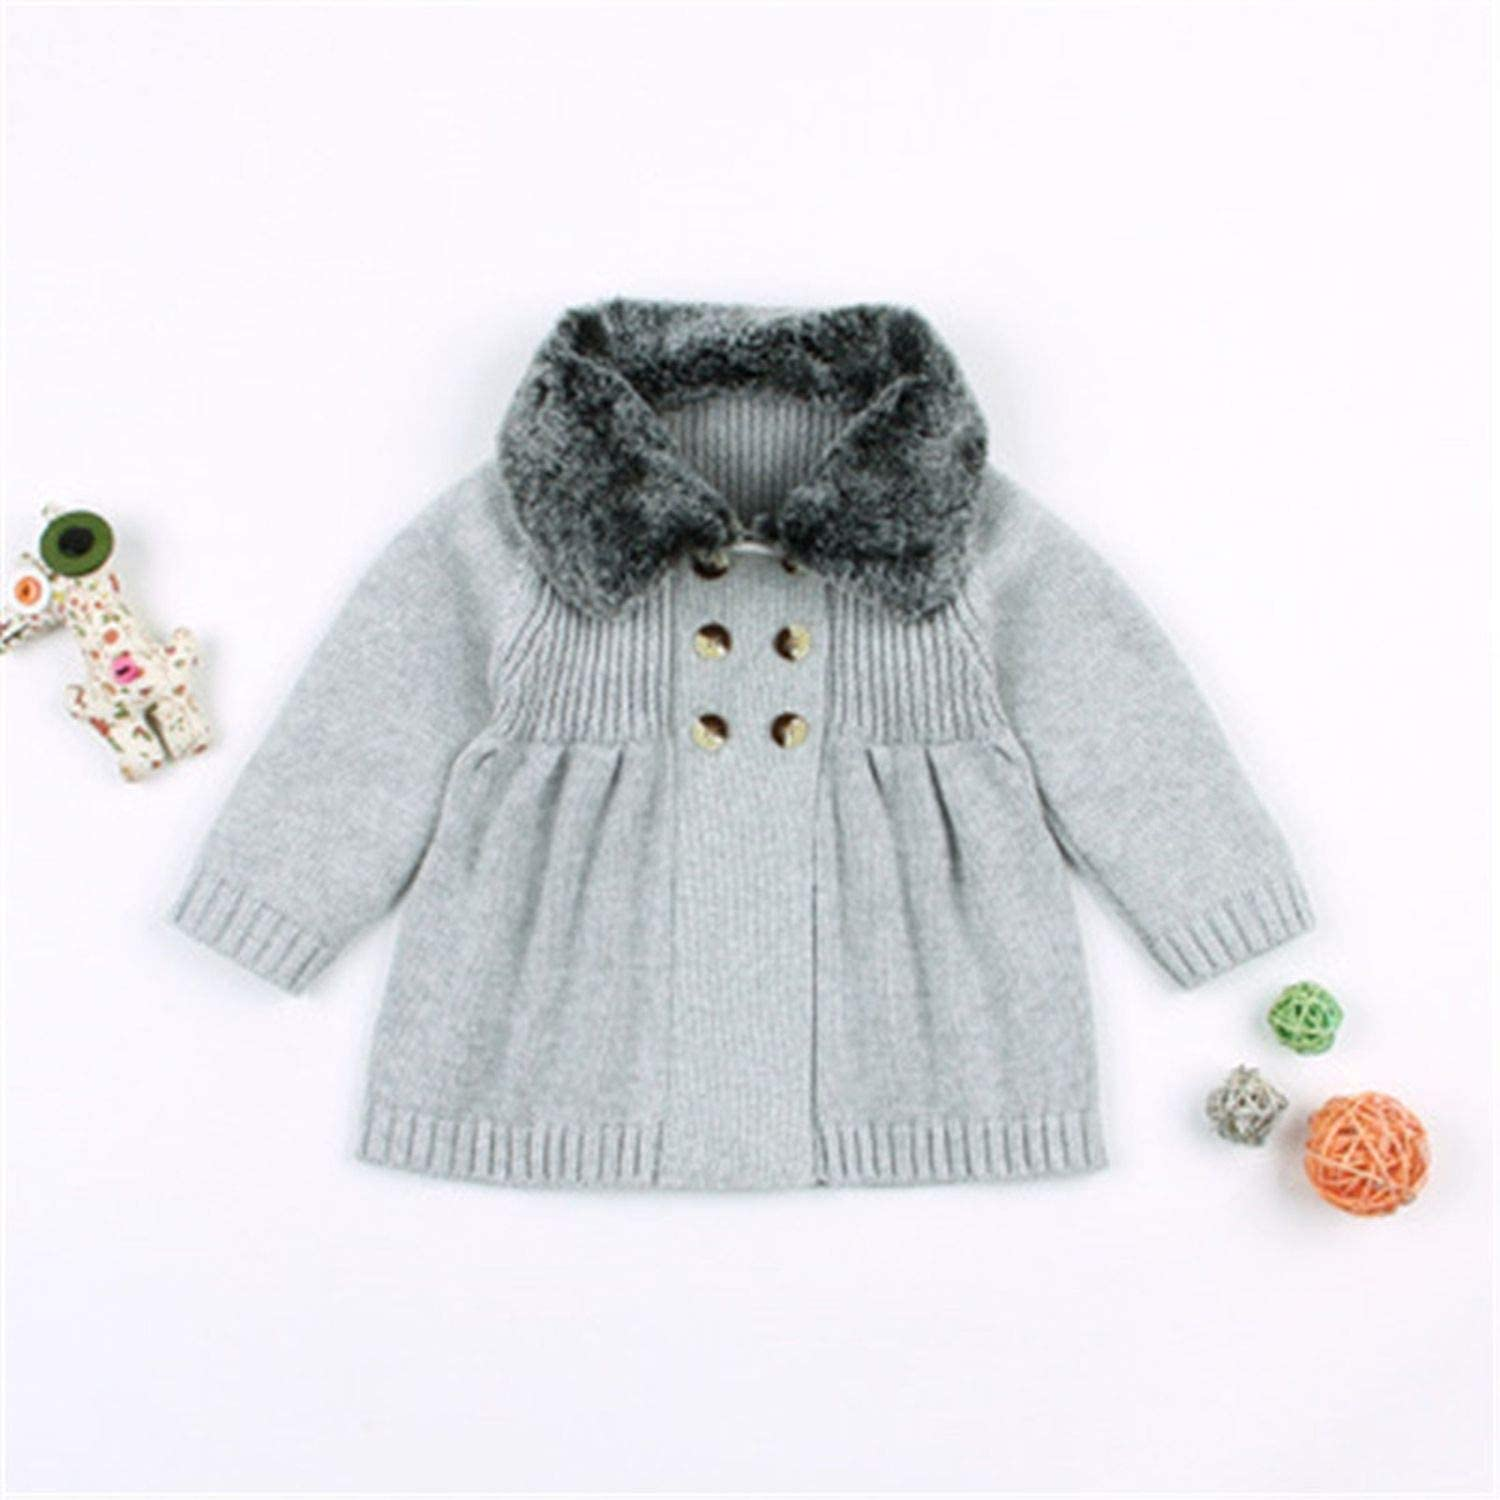 Toddler Baby Girls Boys Christmas Tree Cardigans Knitted Sweater Autumn Winter Long Sleeve Pullovers